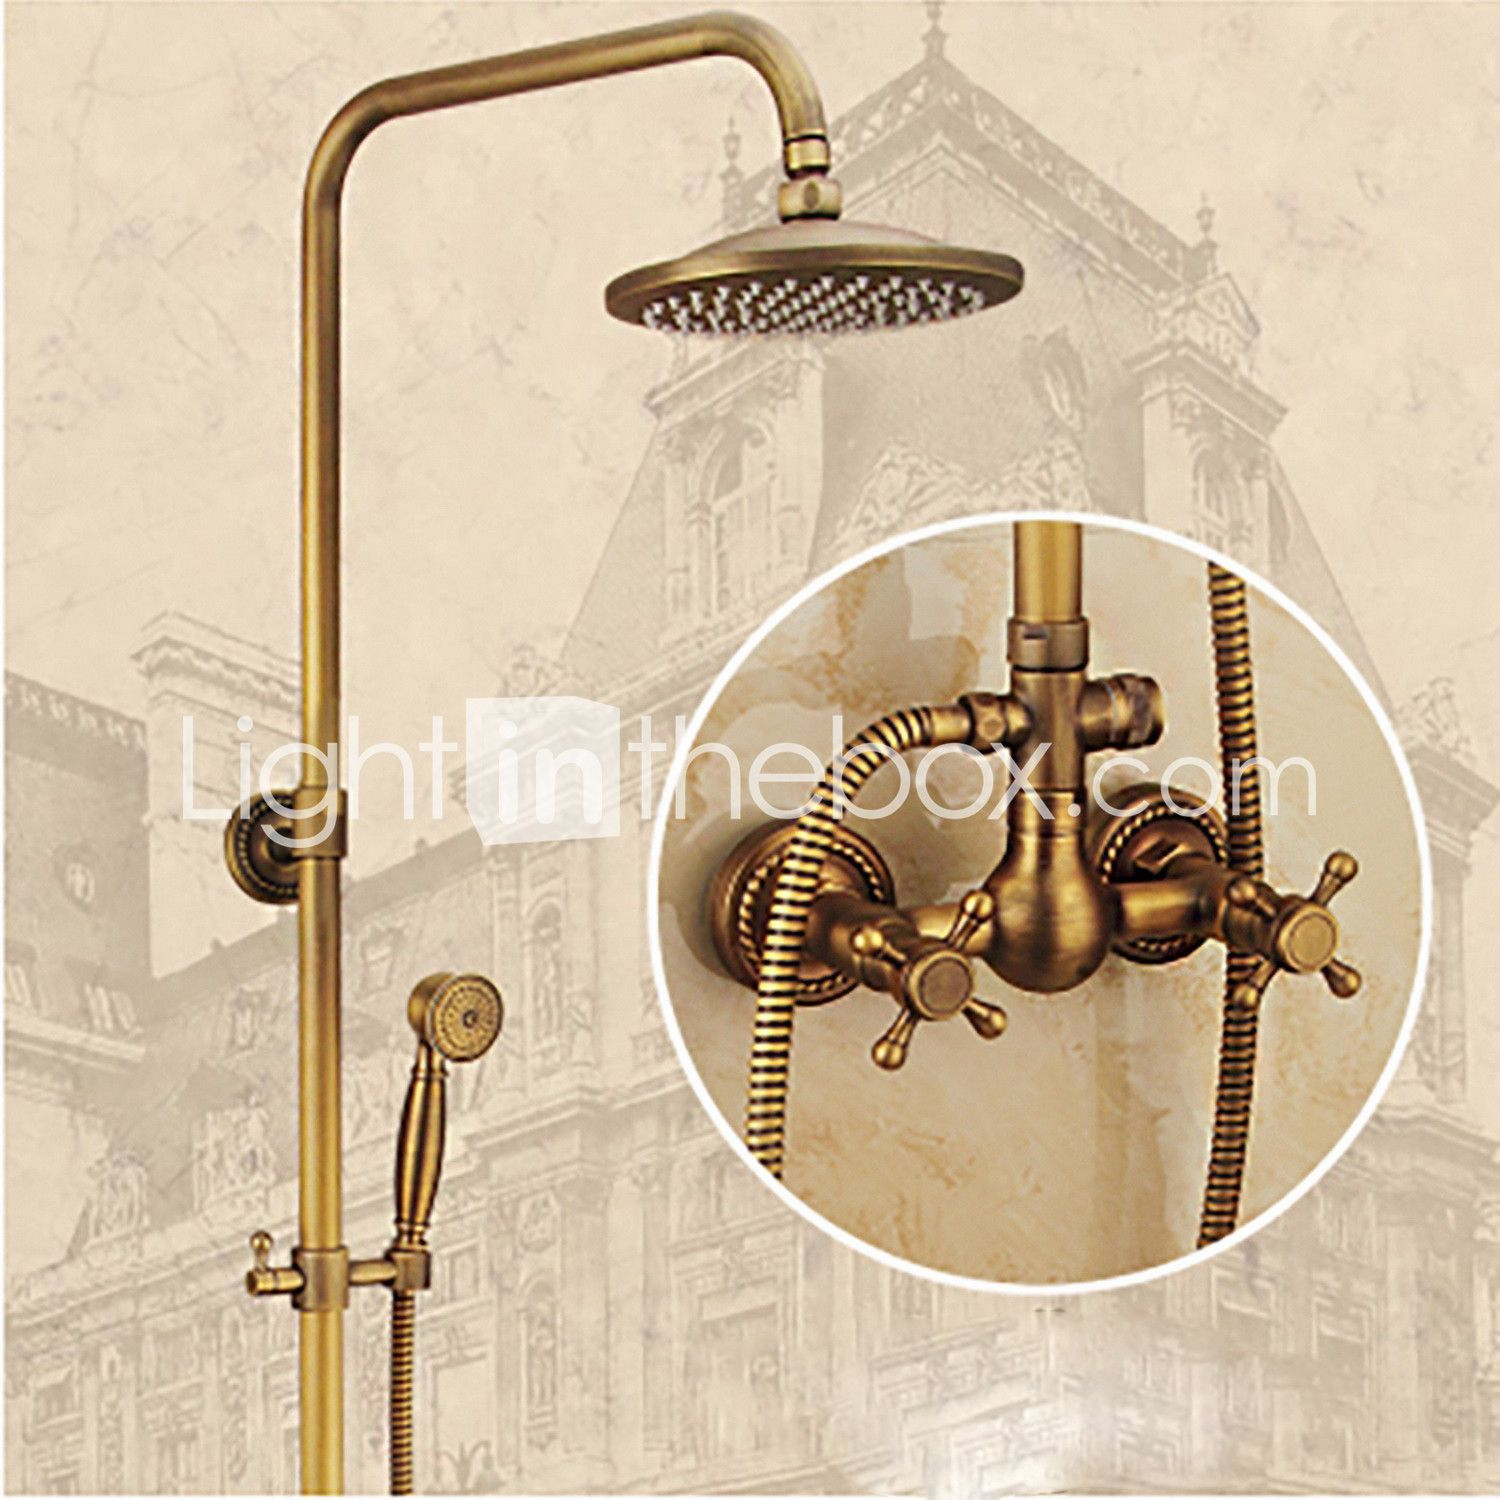 Shower Faucet - Antique Antique Brass Wall Mounted Ceramic Valve ...